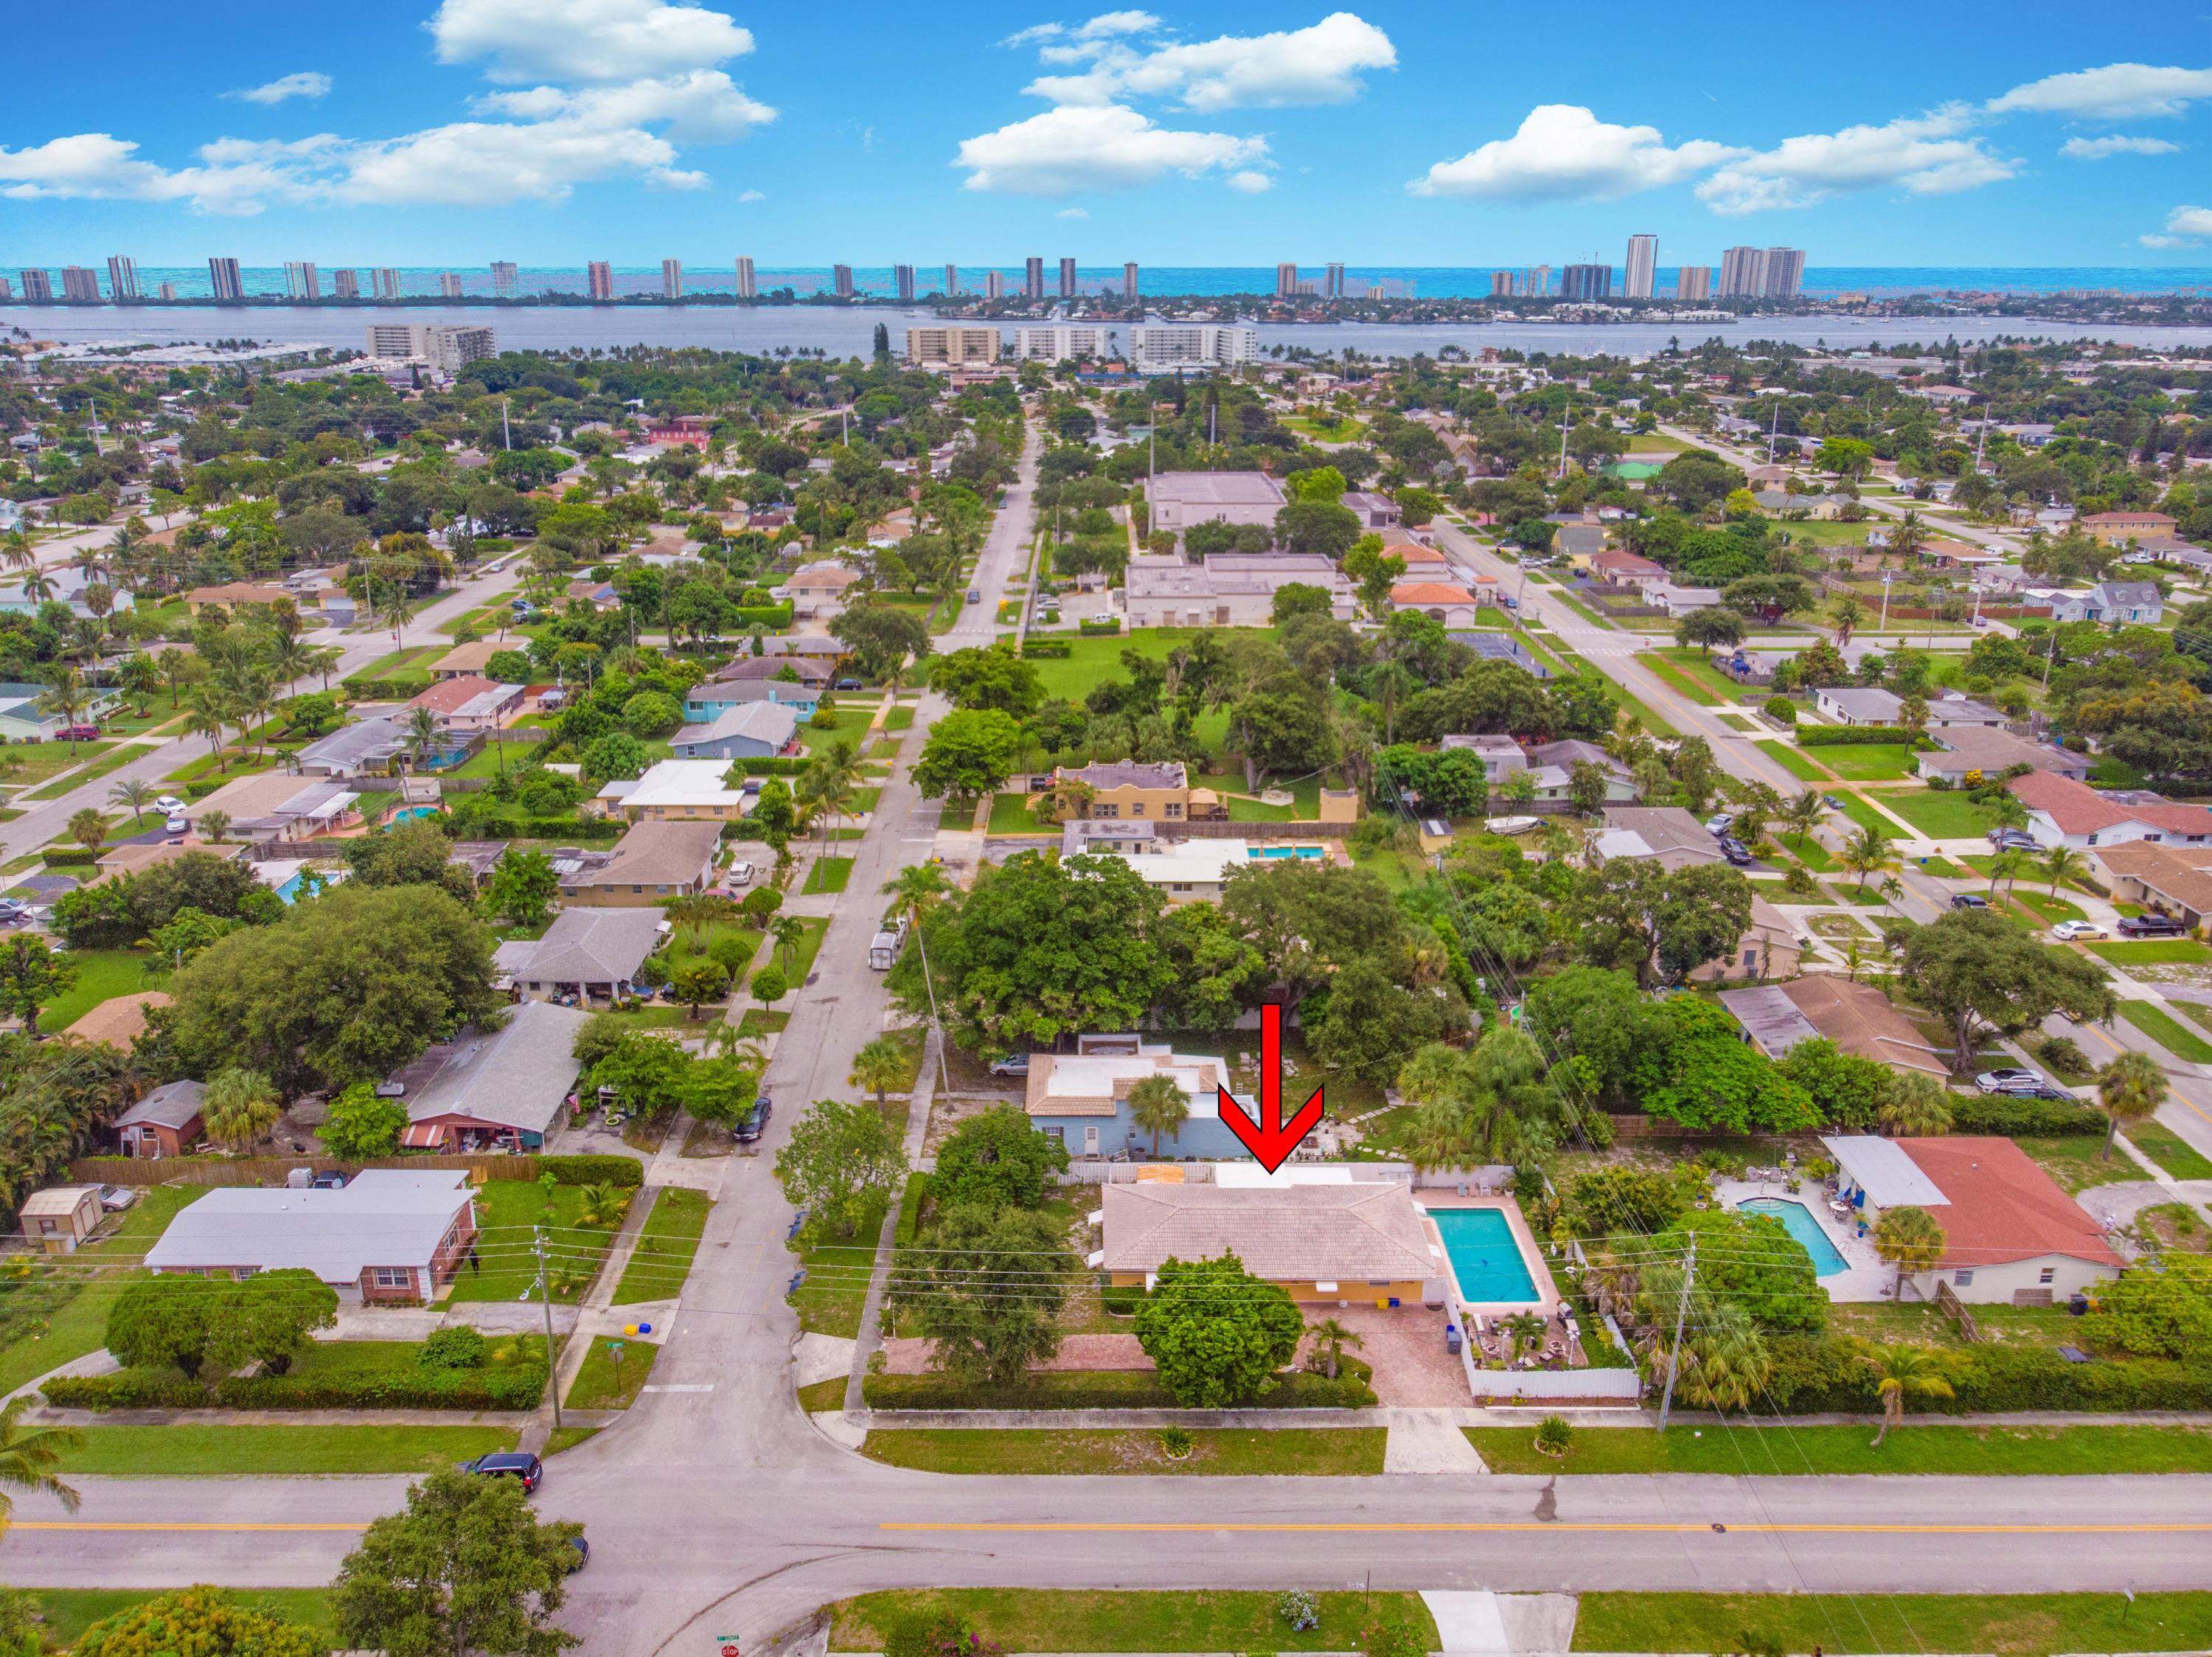 Home for sale in kelsey city in pb 8 pgs 15 to 18, 23, 27 & 34 to 37 inc Lake Park Florida